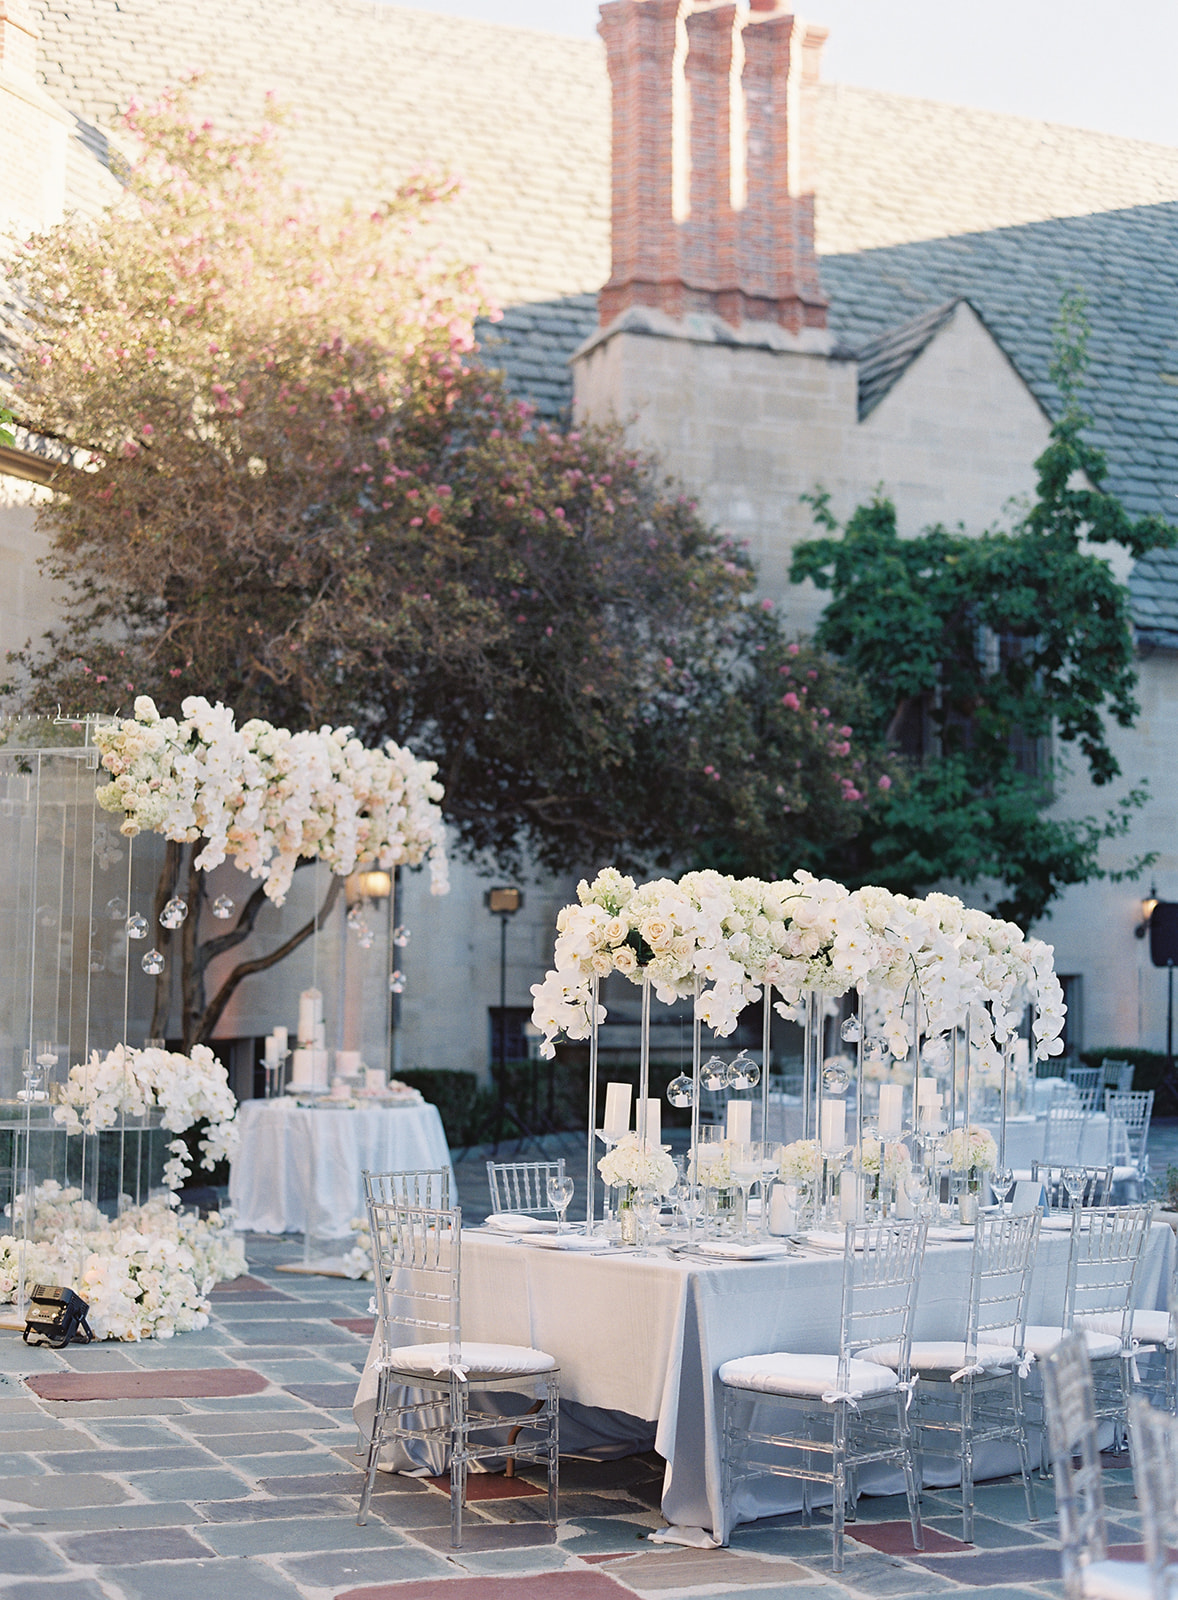 Photo of reception tables with clear chairs and floral centerpieces cascading down towards tables